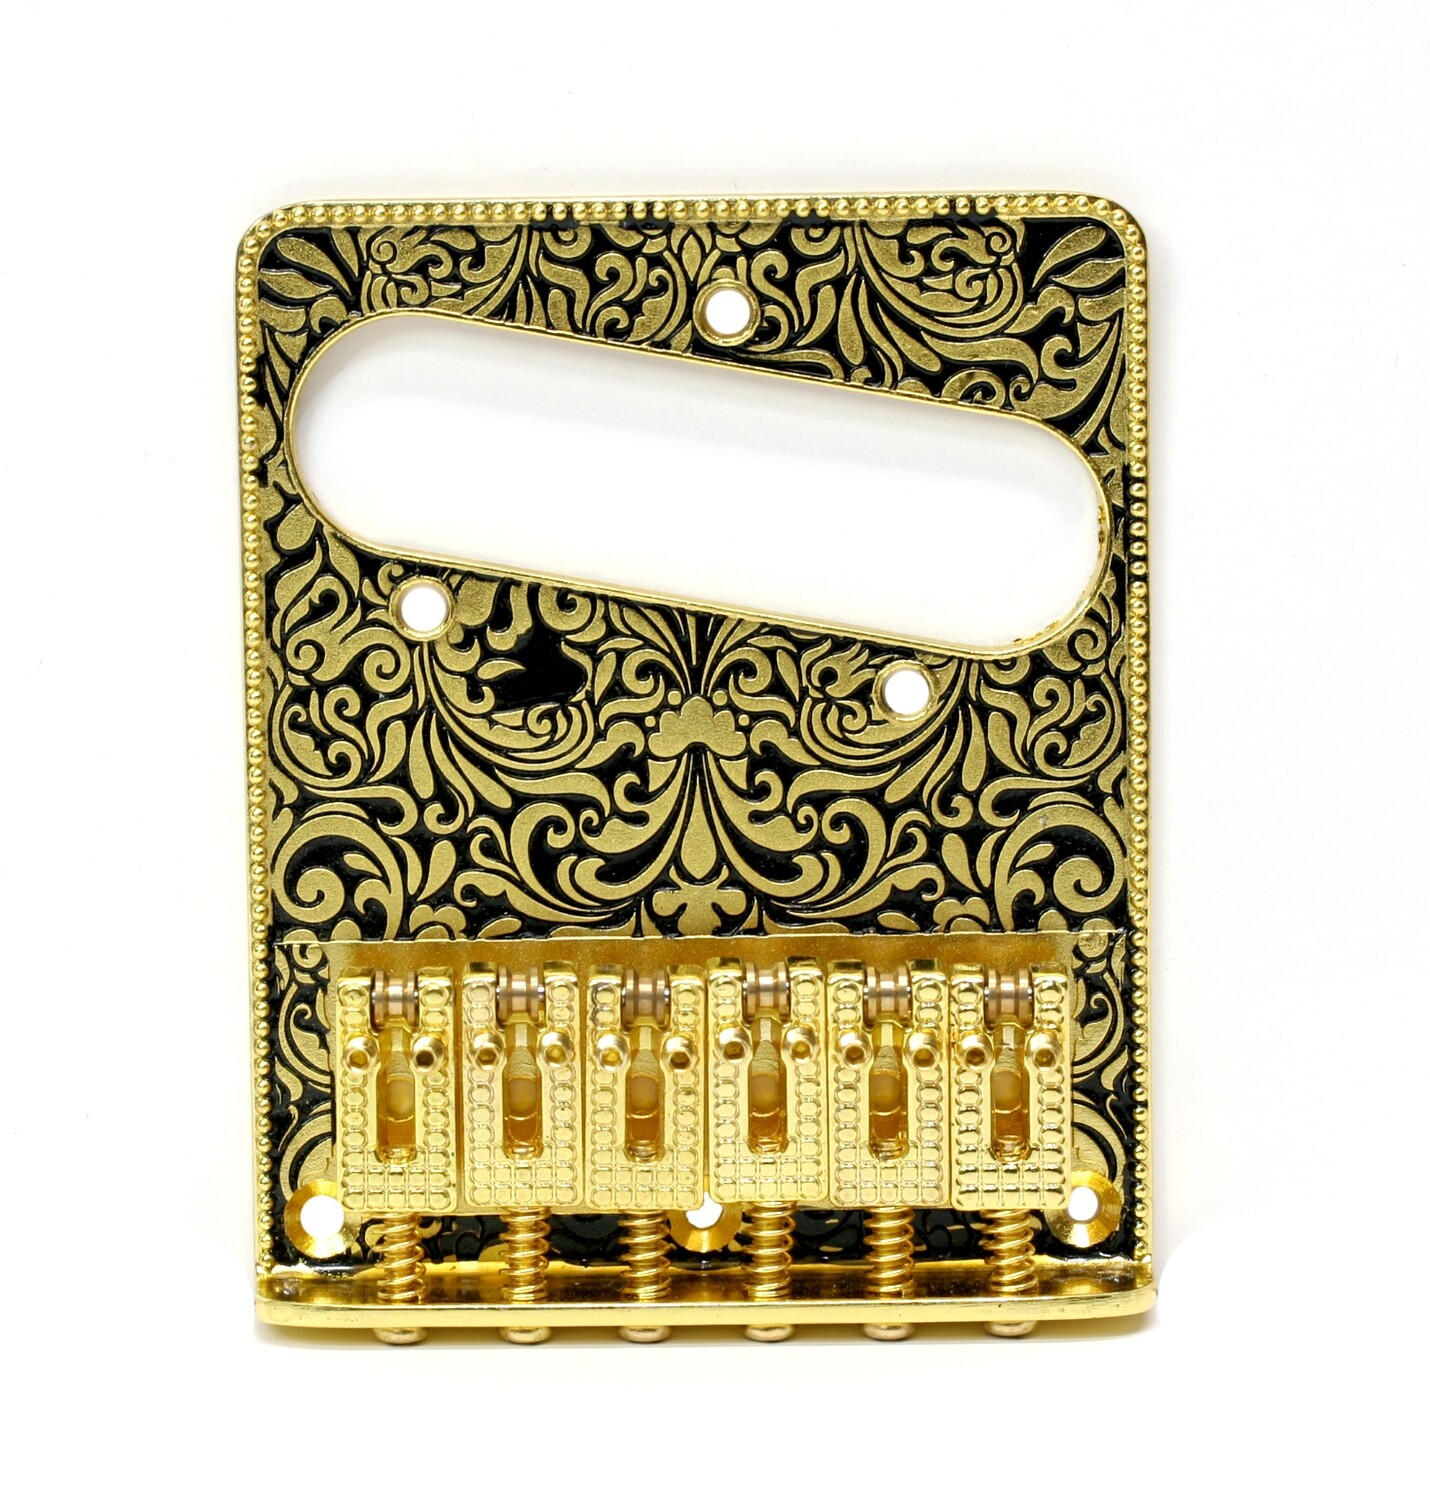 Brio 6 String Metal Telecaster Bridge Plate Design Gold on Black